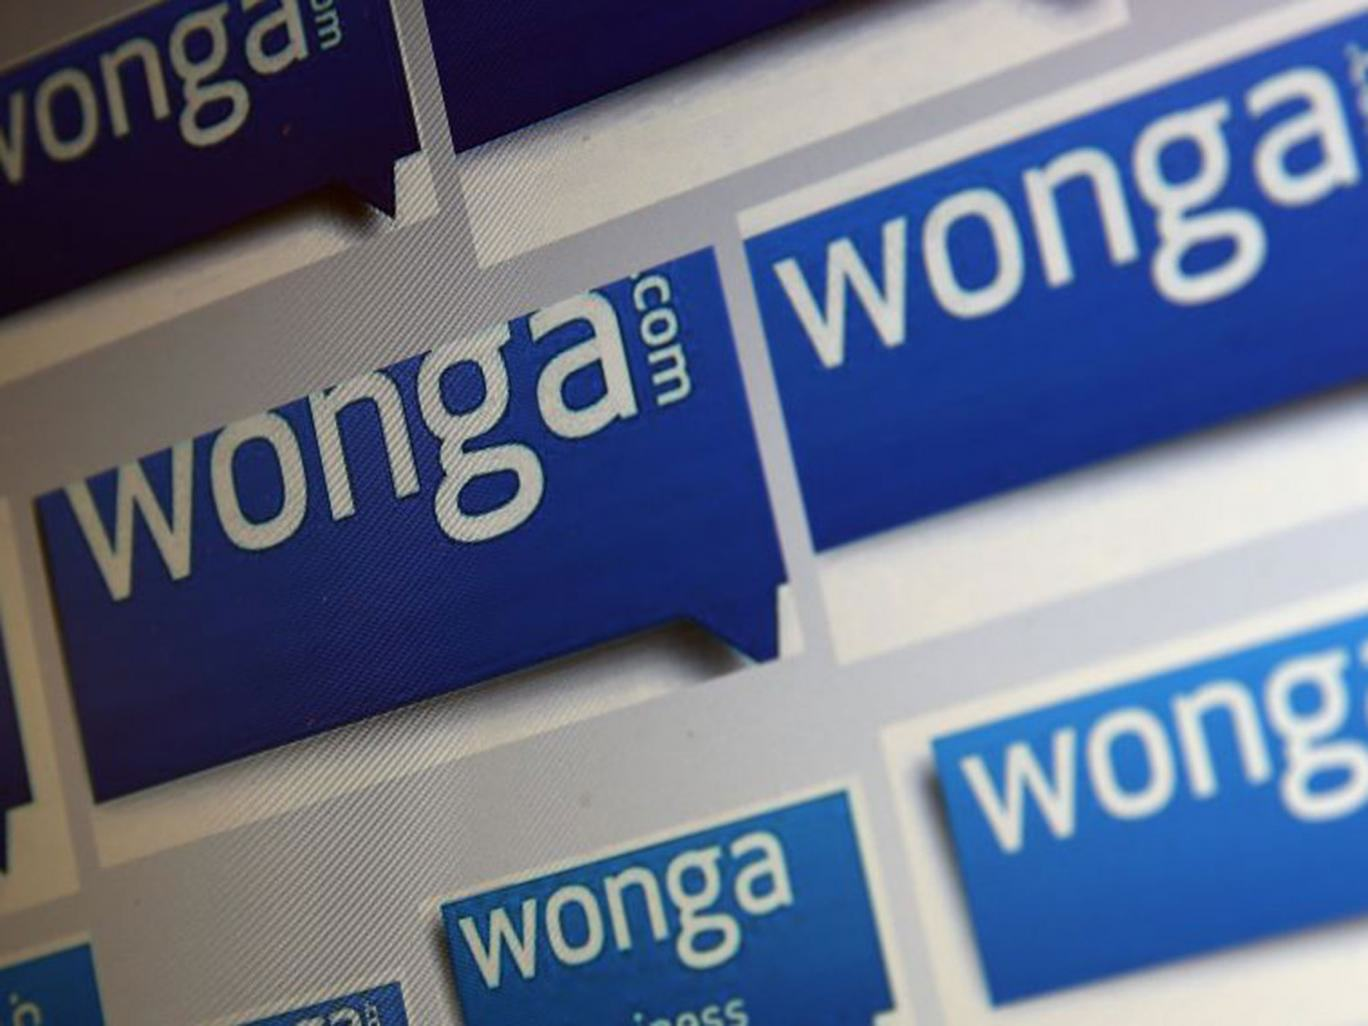 Teenager Killed Himself After Wonga Emptied His Bank Account wonga3